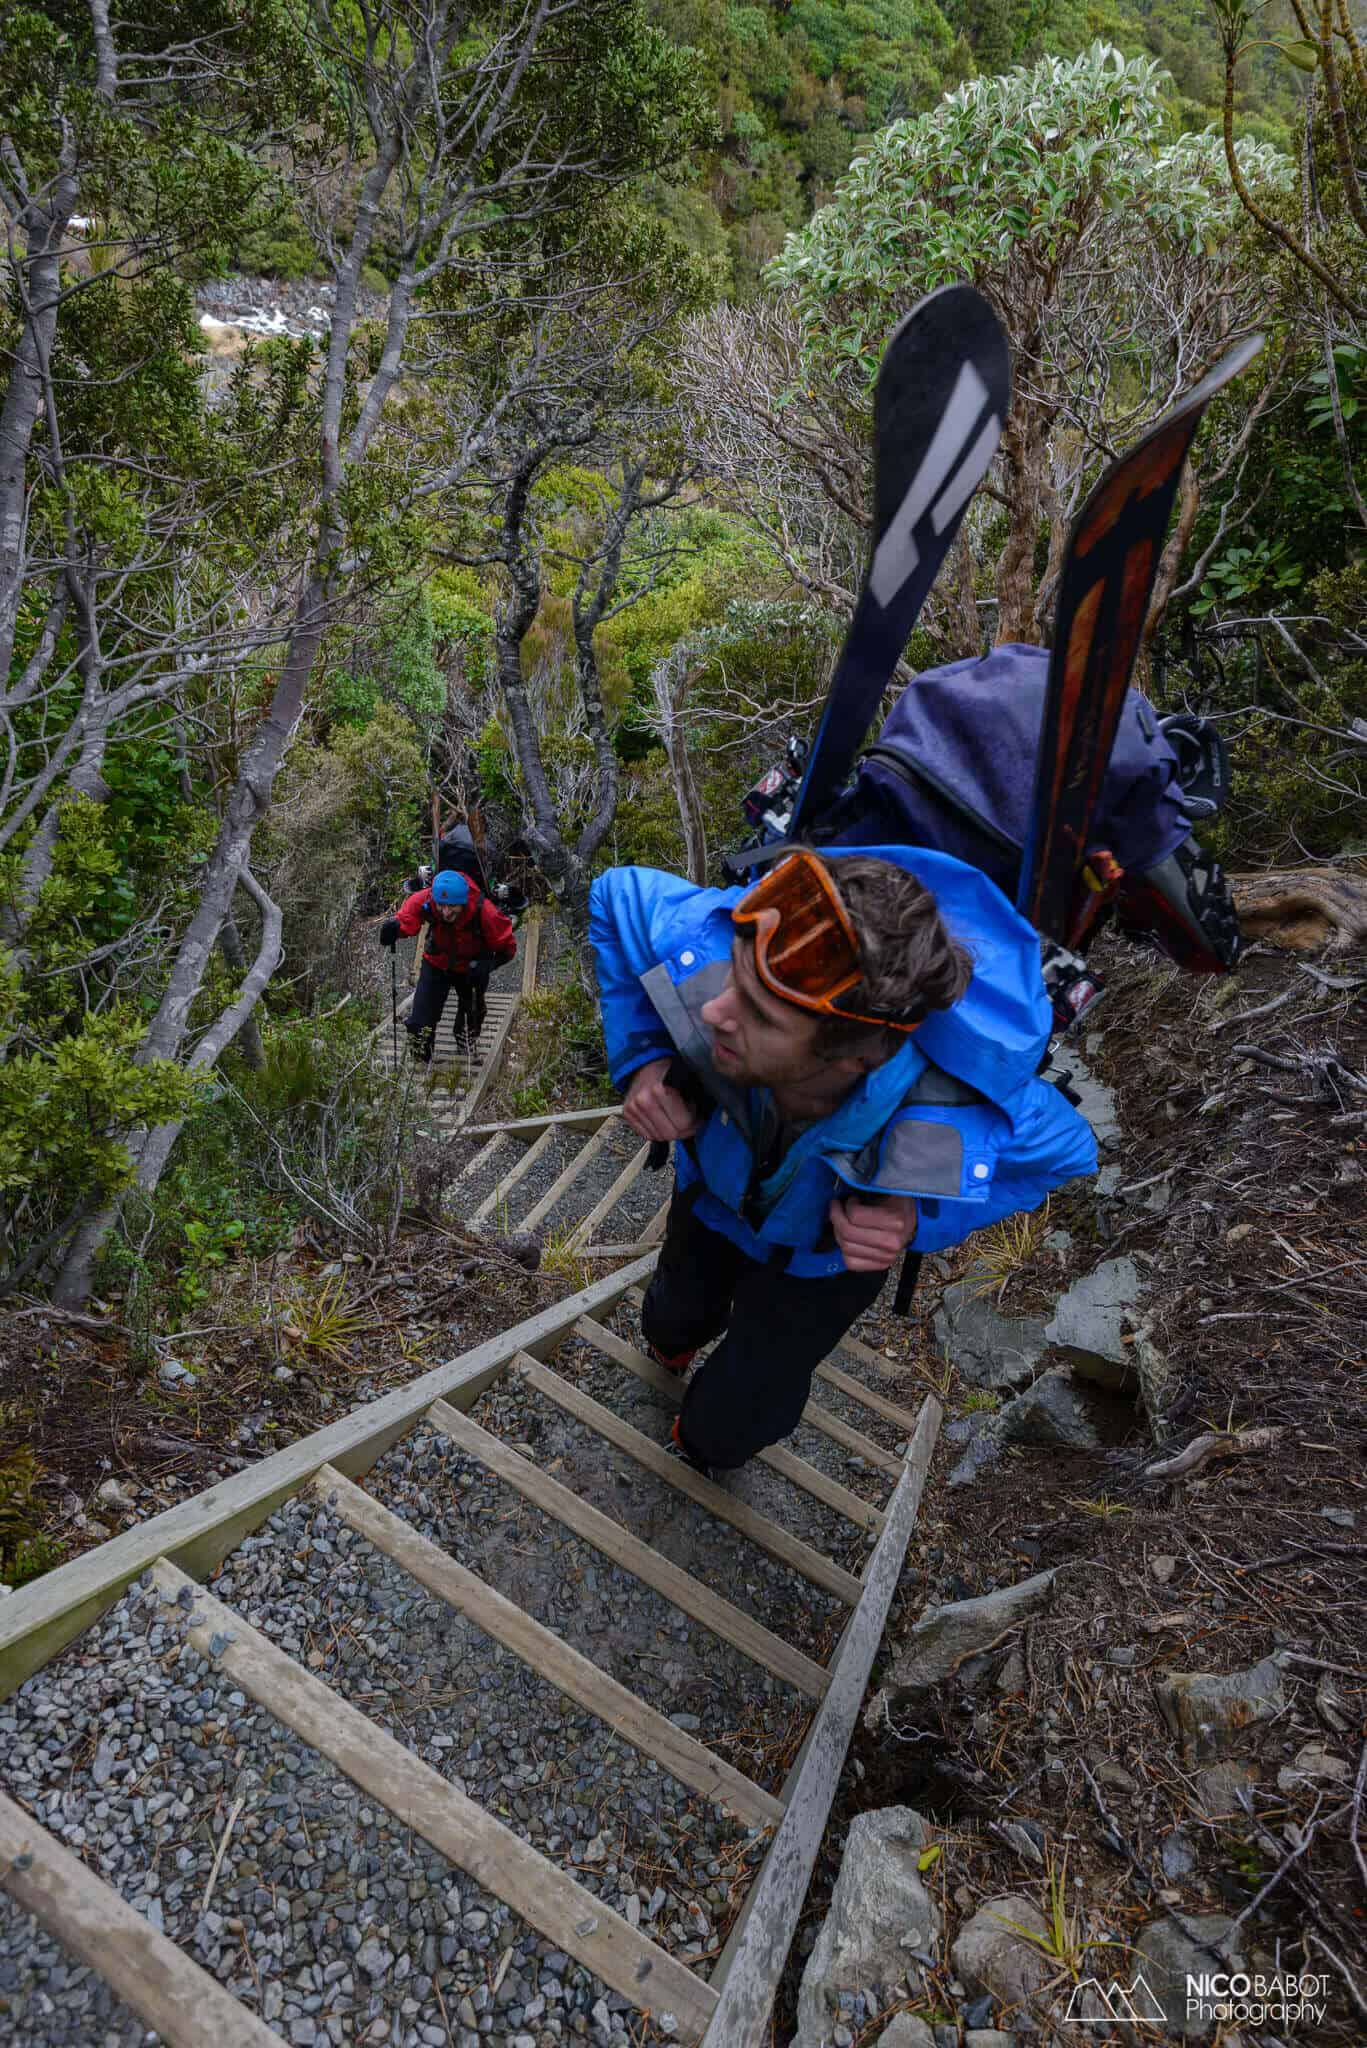 Photography guide Mueller hut - Steps to climb up are long and numerous Photo by Nico Babot